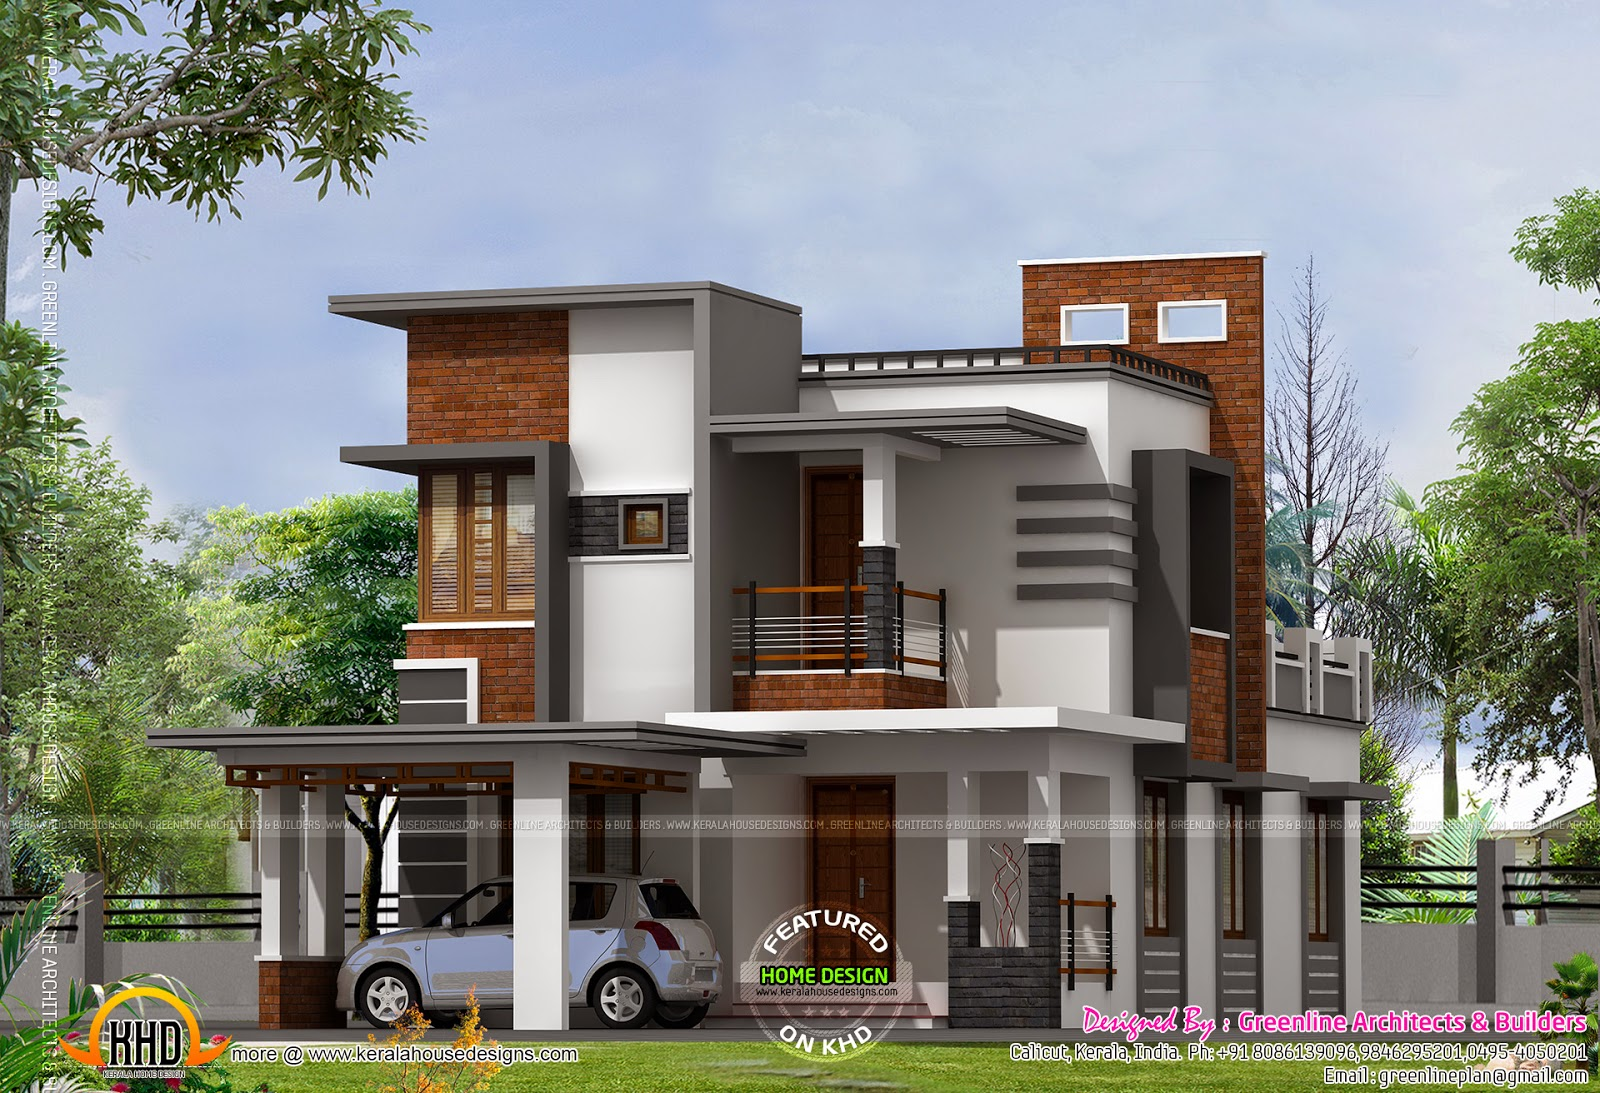 Low cost contemporary house kerala home design and floor for Homes designs